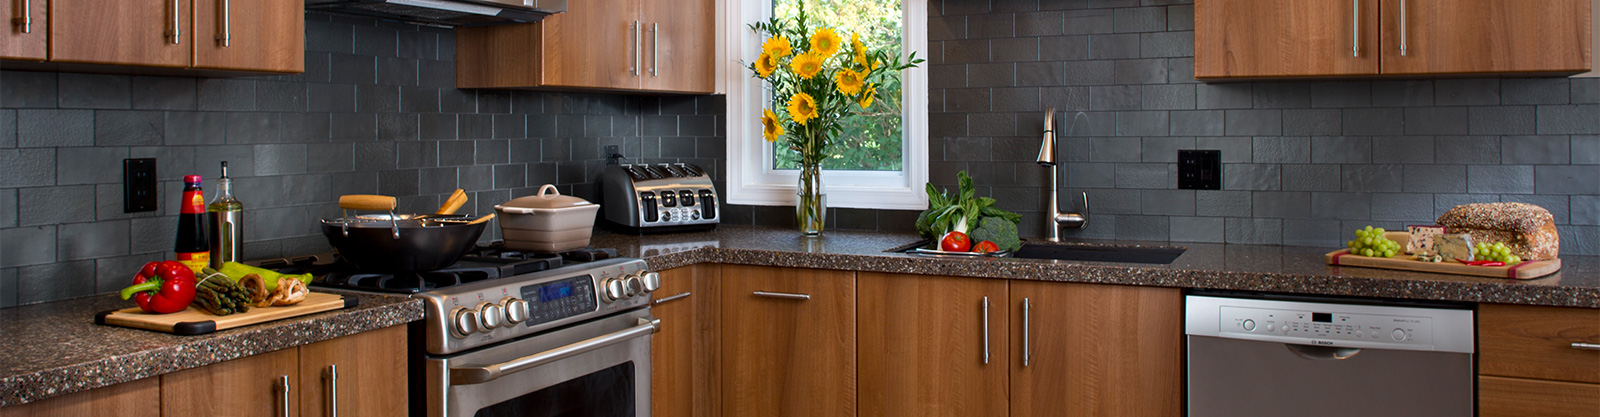 A kitchen with wood cabinets, dark gray brick backsplash, a sunflower in a vase and a wok on the stove.